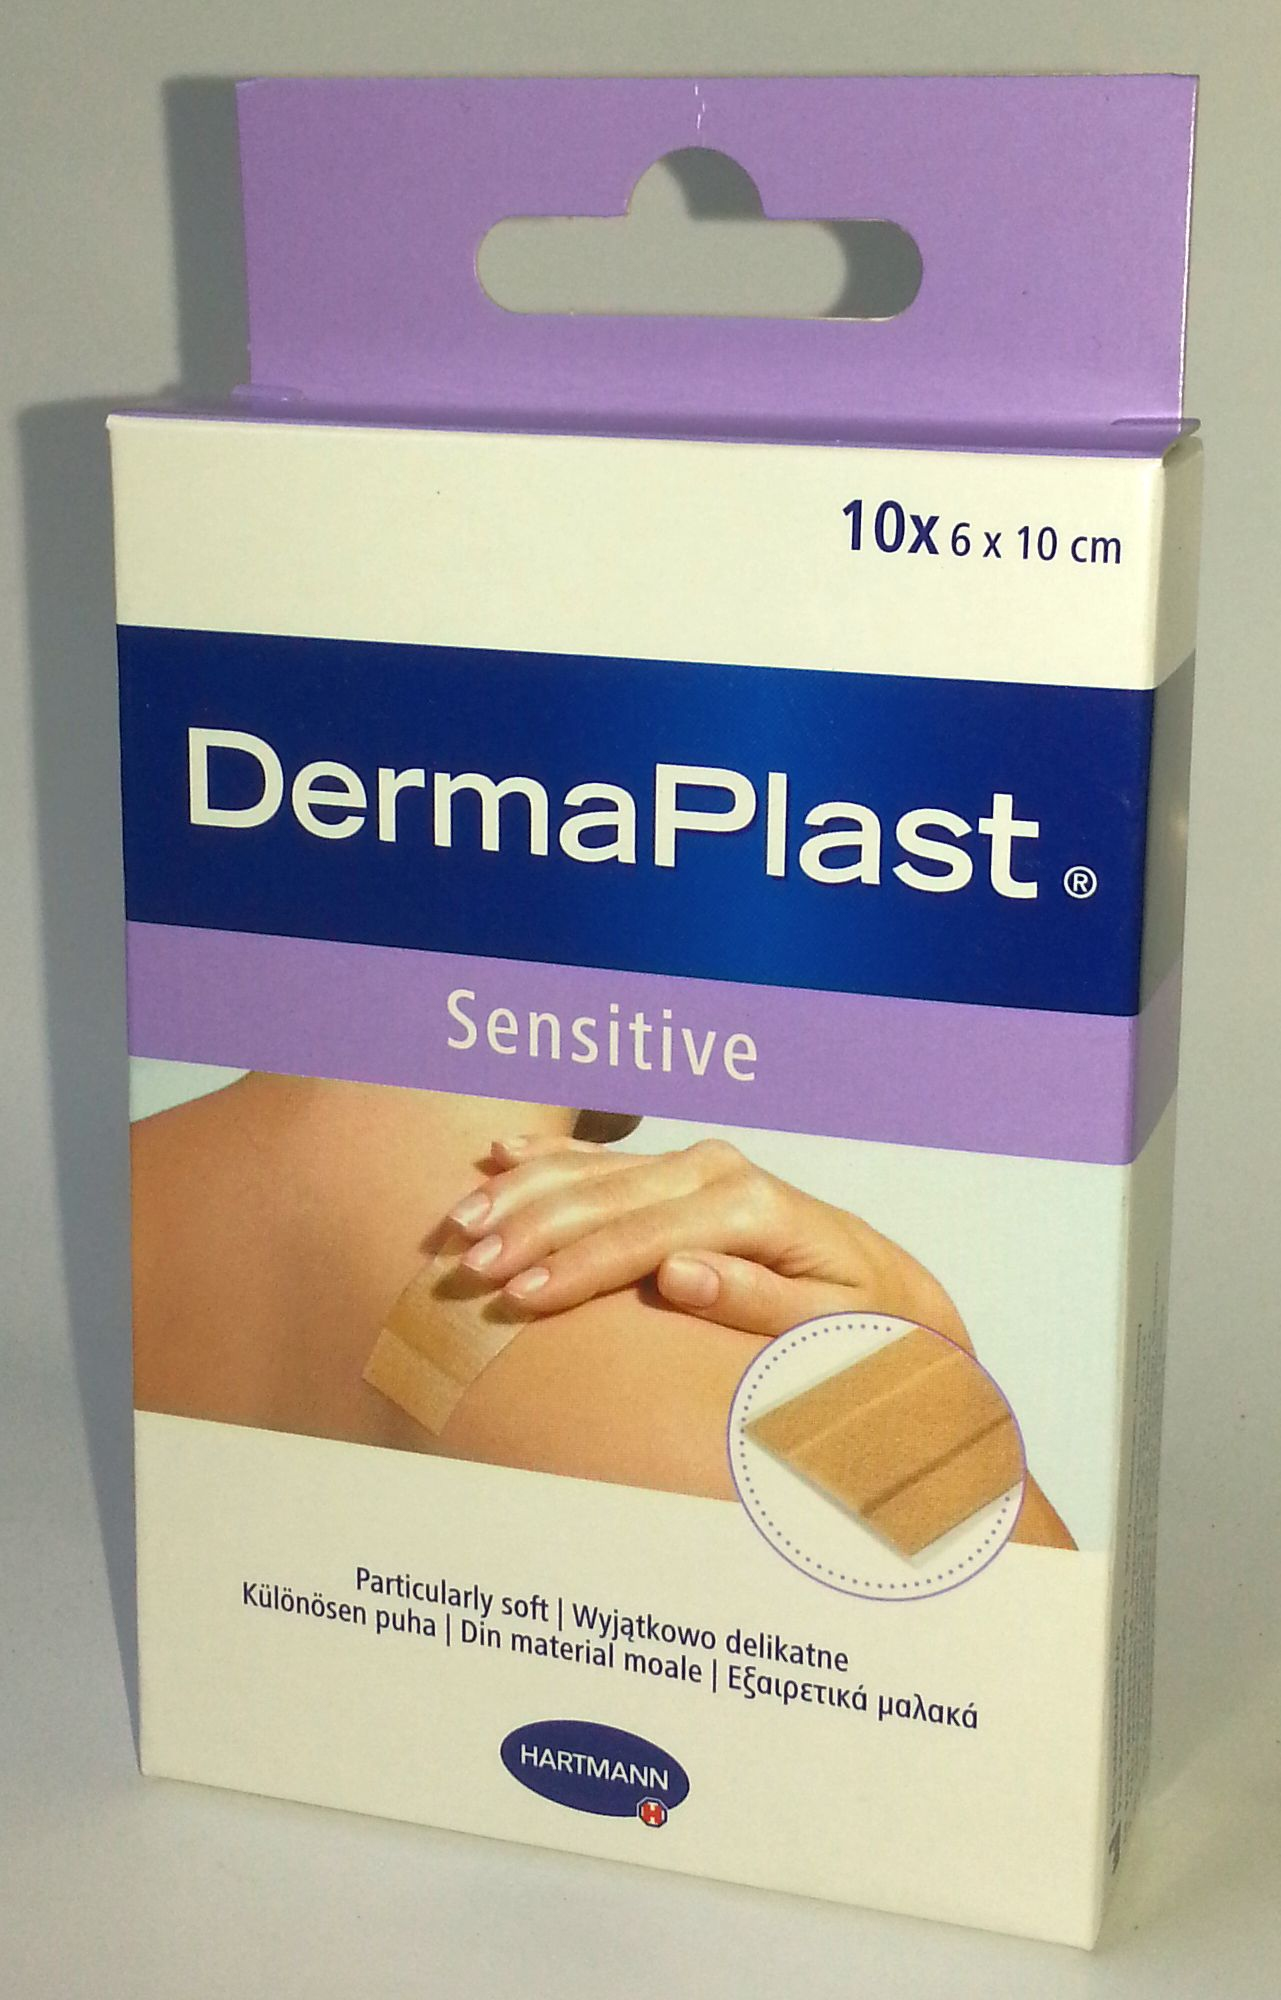 dermaplast sensitive.jpg